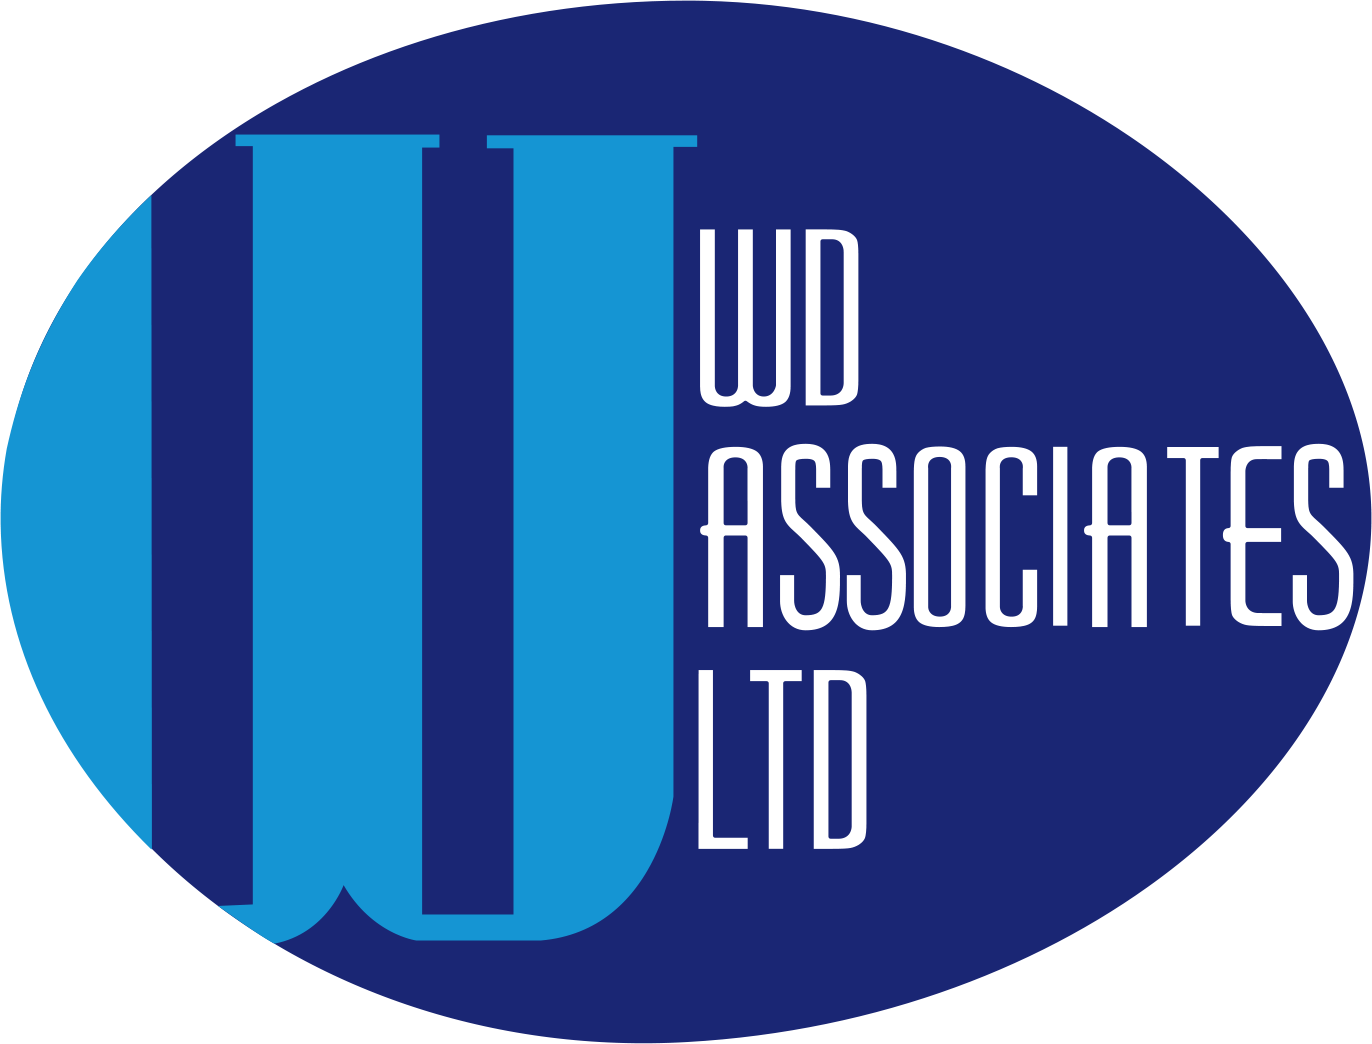 WD Associates Co Ltd